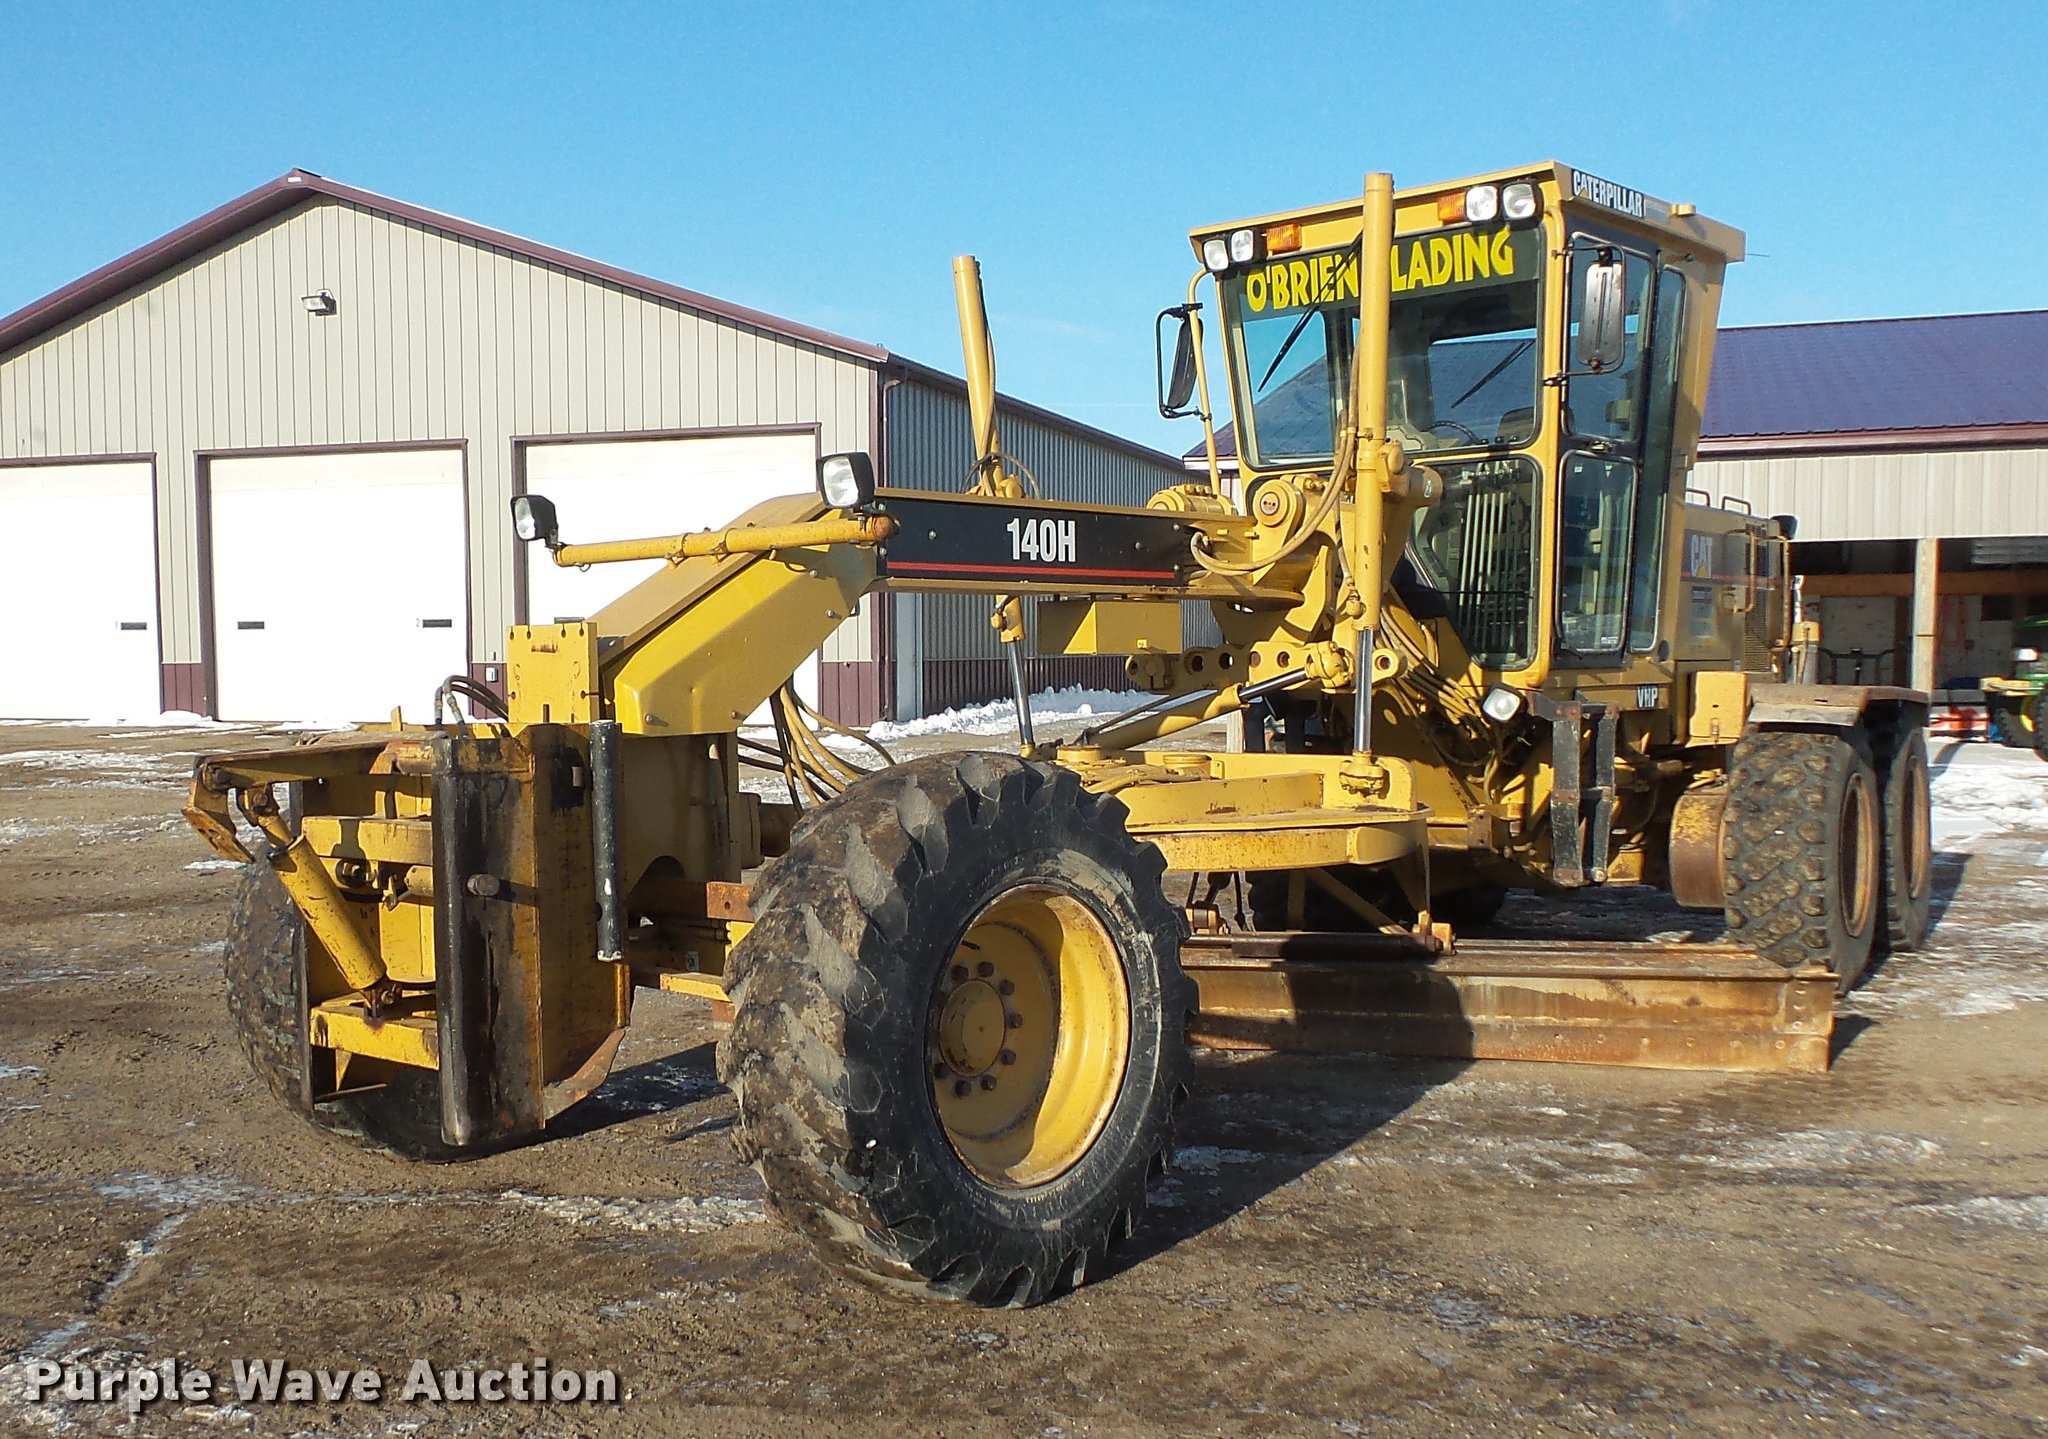 1997 Caterpillar 140H motor grader | Item DV9588 | SOLD! Apr